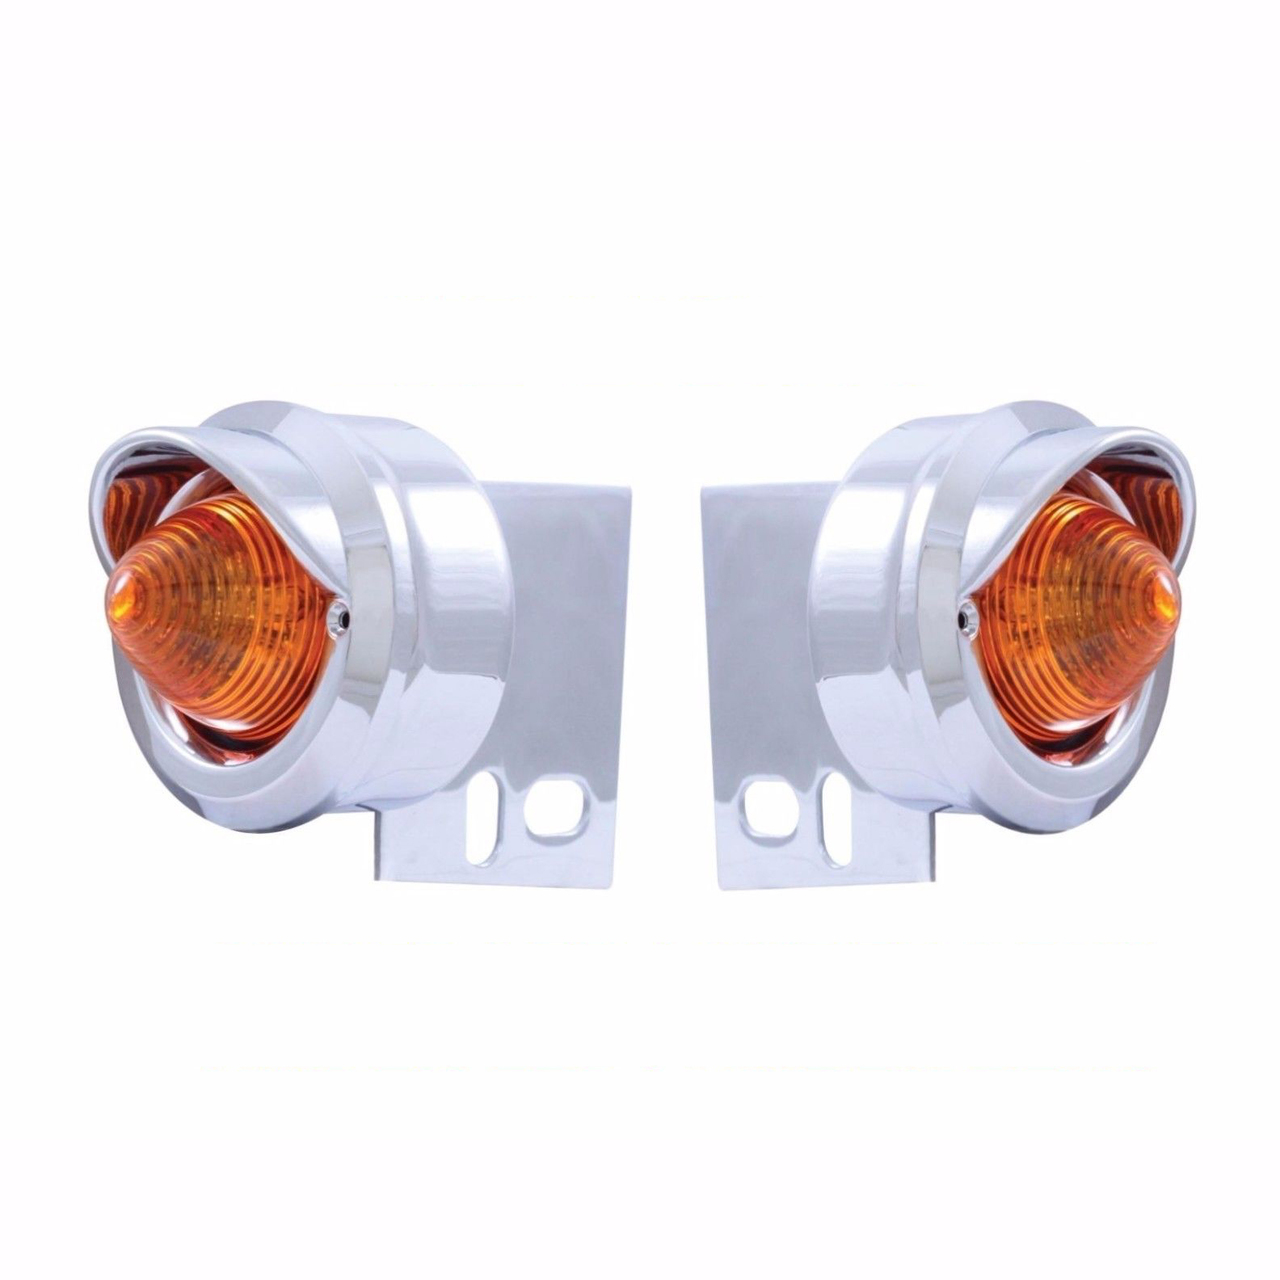 9 LED Beehive Mud Flap Hanger End Light with Visors, Amber LED with Amber Lens, Pair